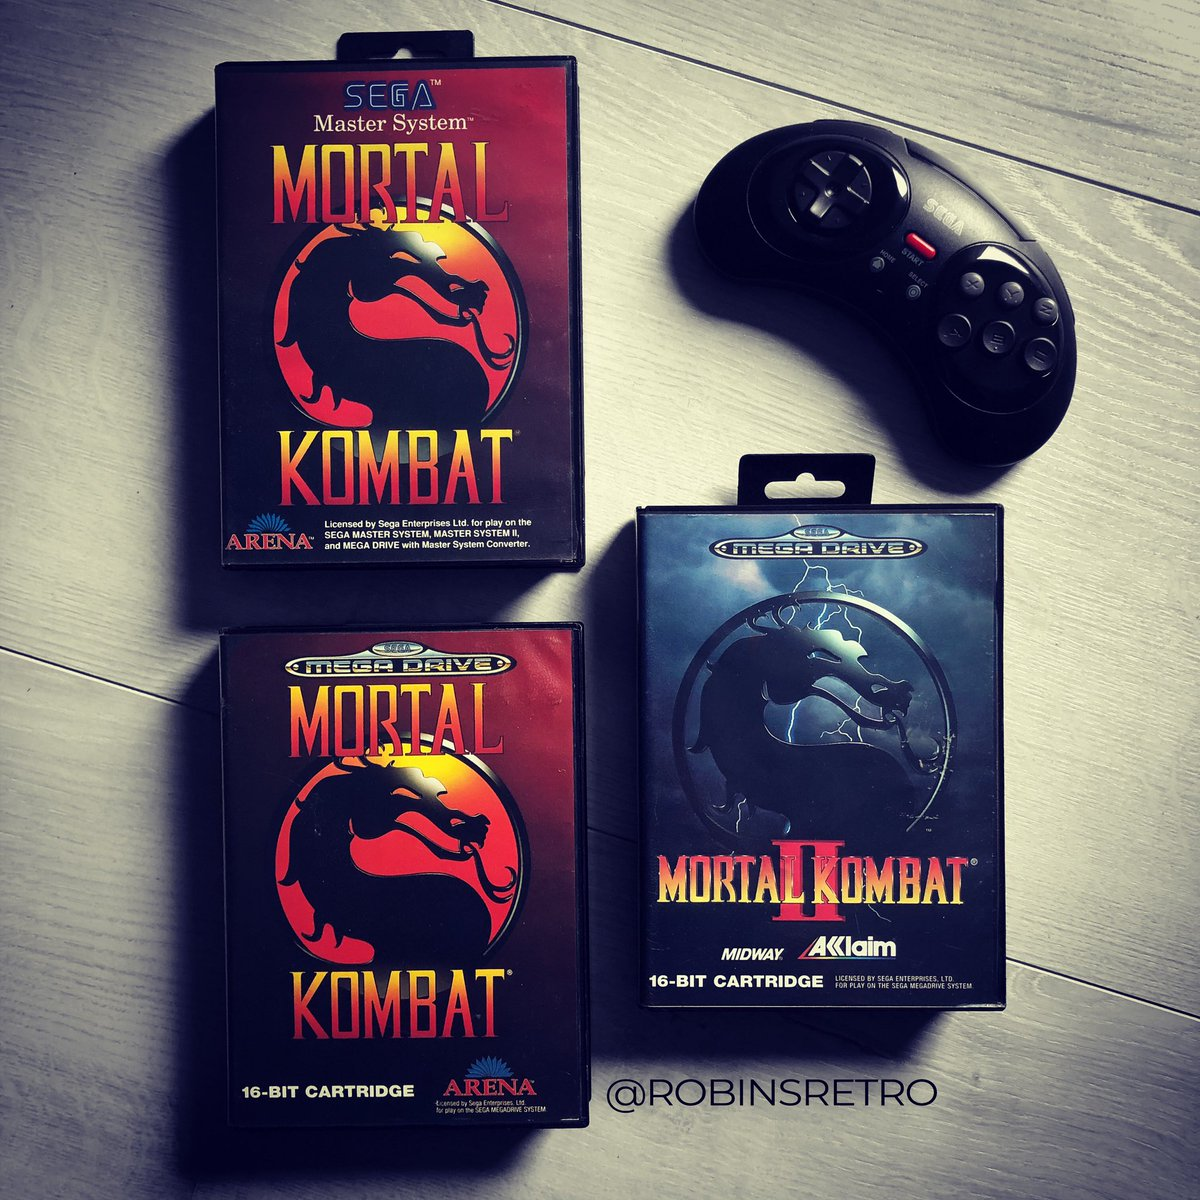 What was the first #MortalKombat game you ever played?  #MortalKombat11 #SegaGenesis #gamingpic.twitter.com/aTfDkhT7Y7